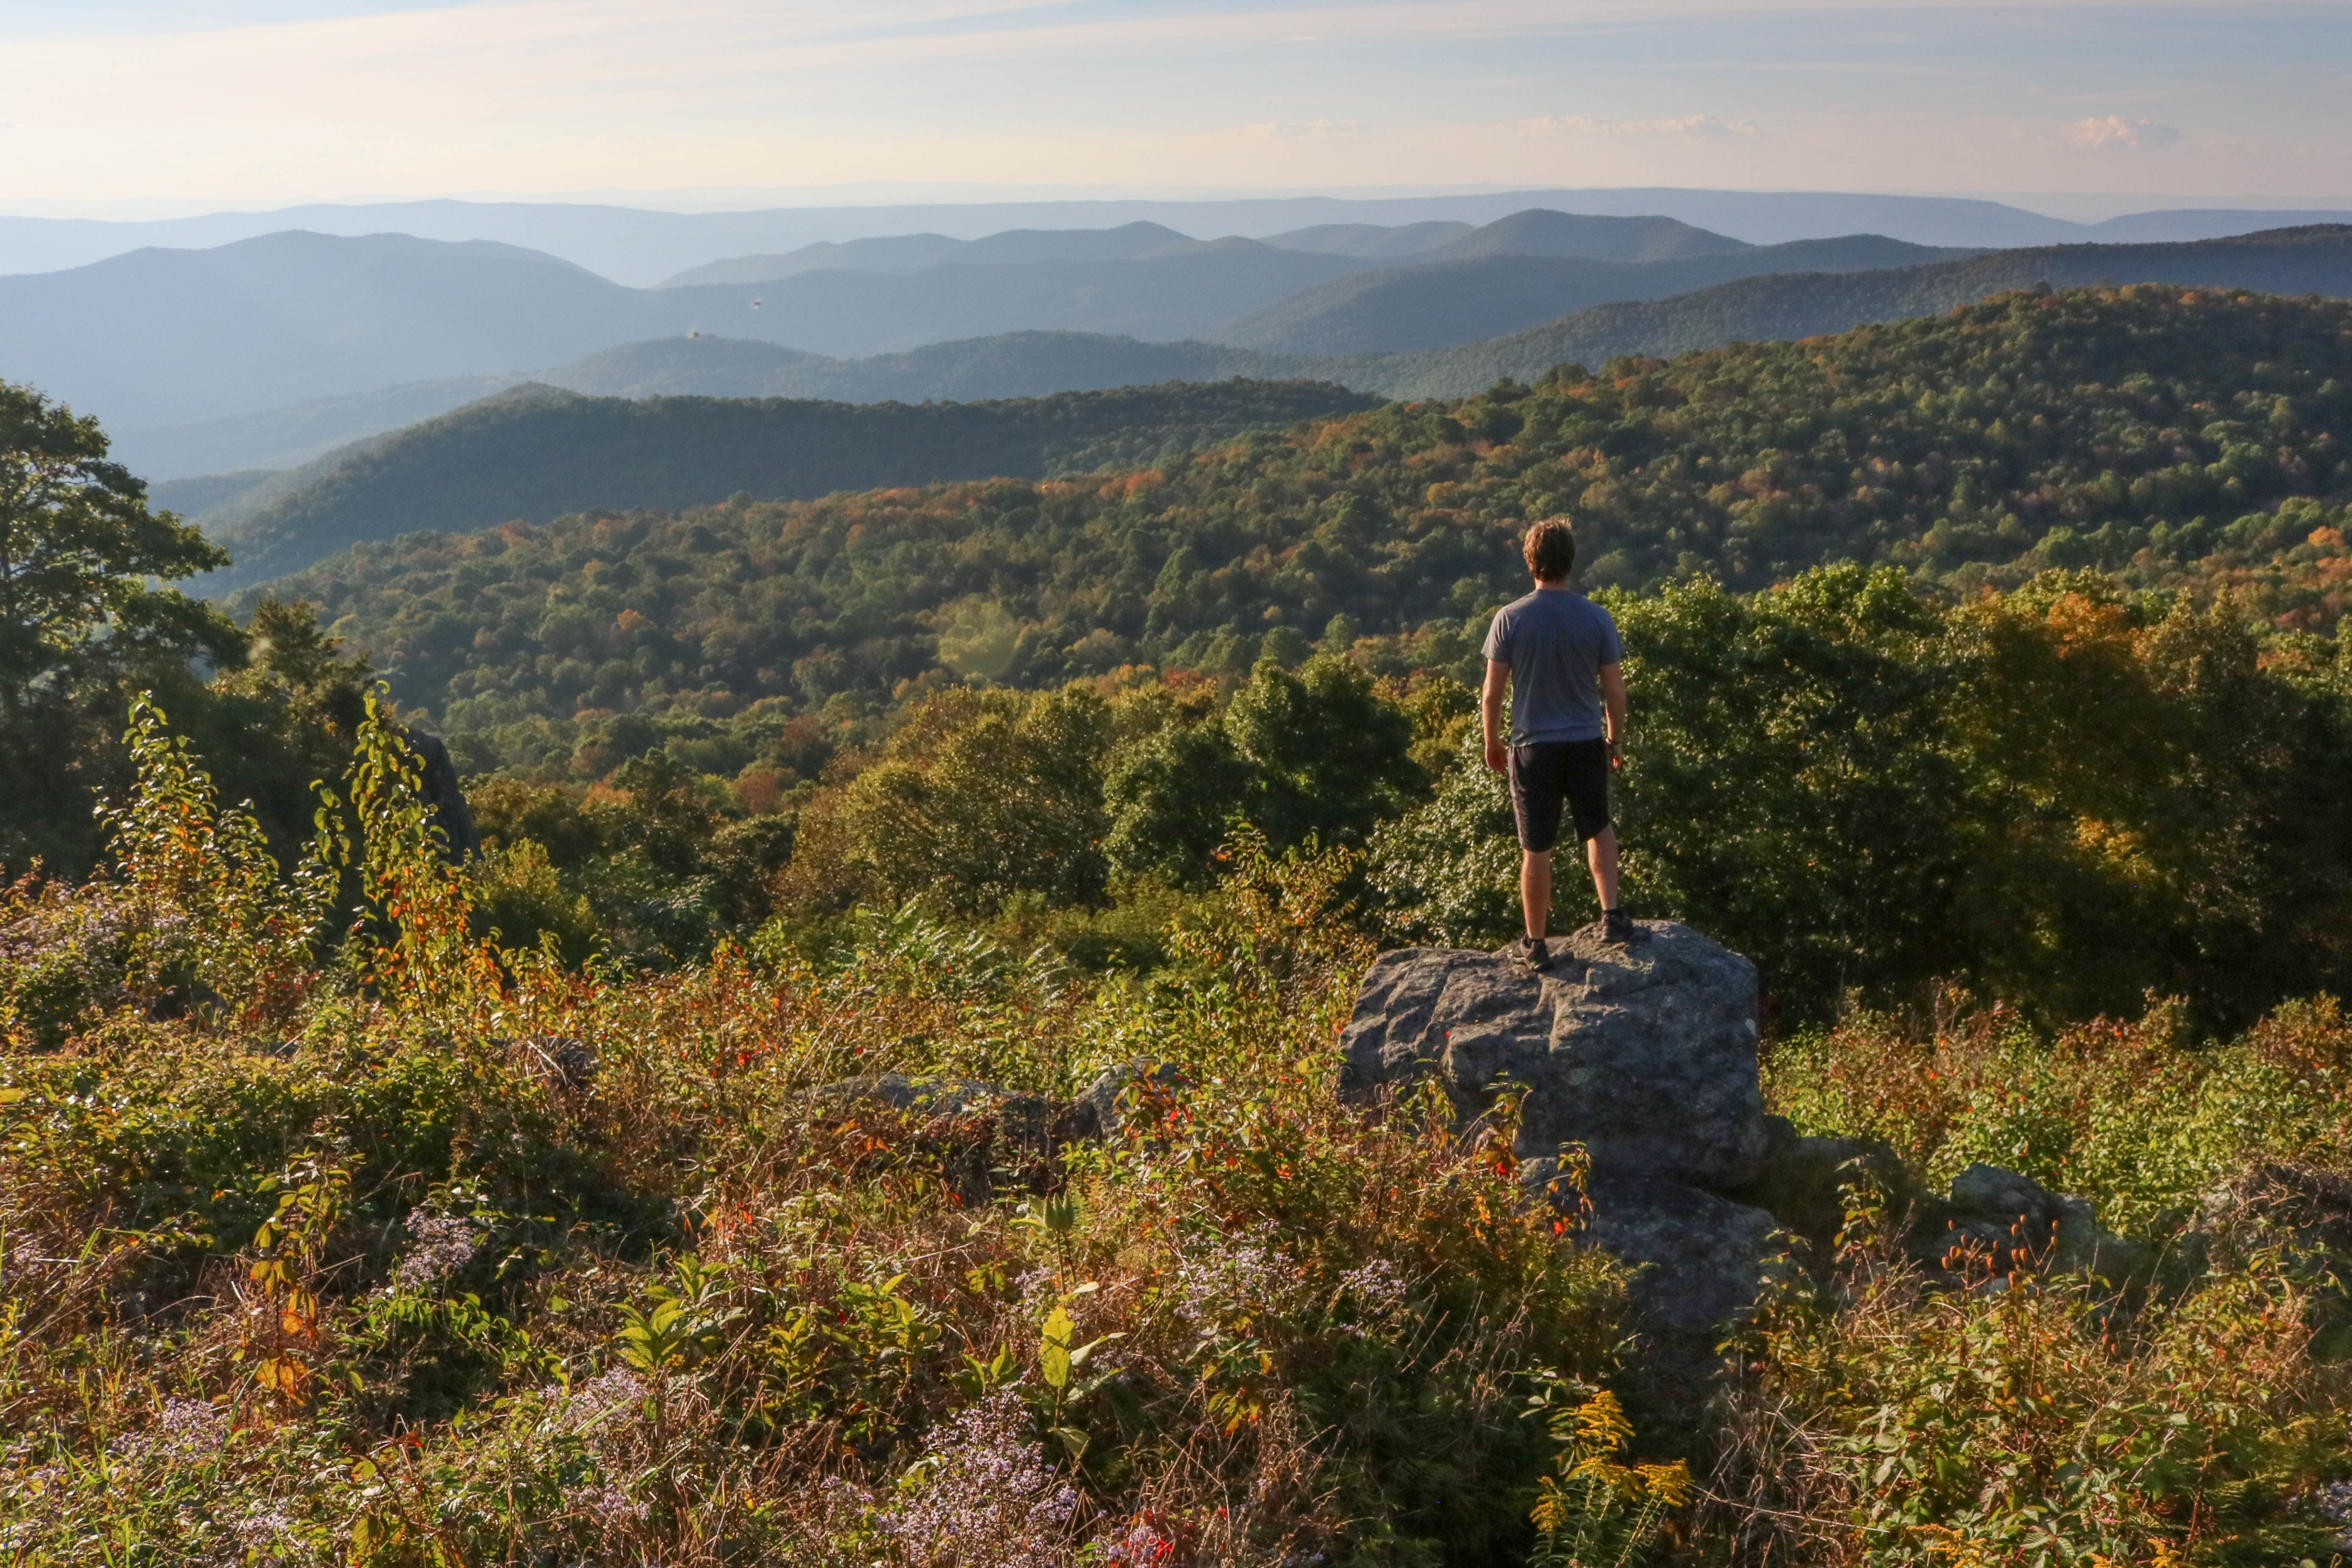 More than 100 miles of the 2,180-mile long trail snakes its way through the park. Much of it is close to Skyline Drive, so it's easy to access if you'd like to trek only a portion of it.{ }(File photo)